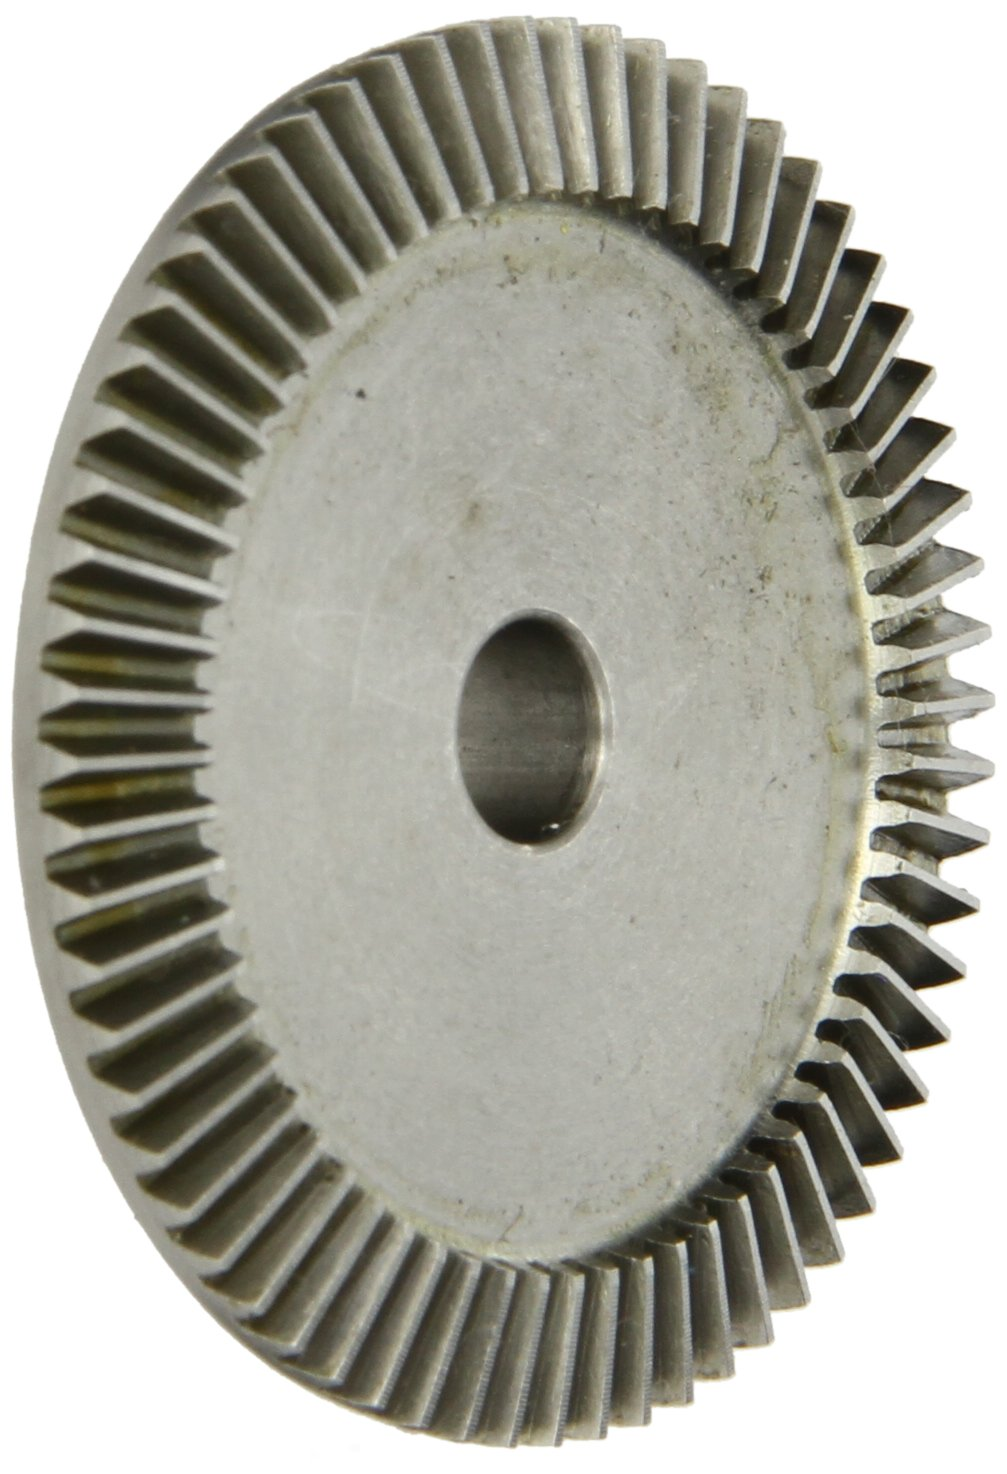 "Boston Gear GSS486YG Bevel Gear, 0.313"" Bore, 4:1 Ratio, 20 Degree Pressure Angle, 32 Pitch, 64 Teeth, Stainless Steel"